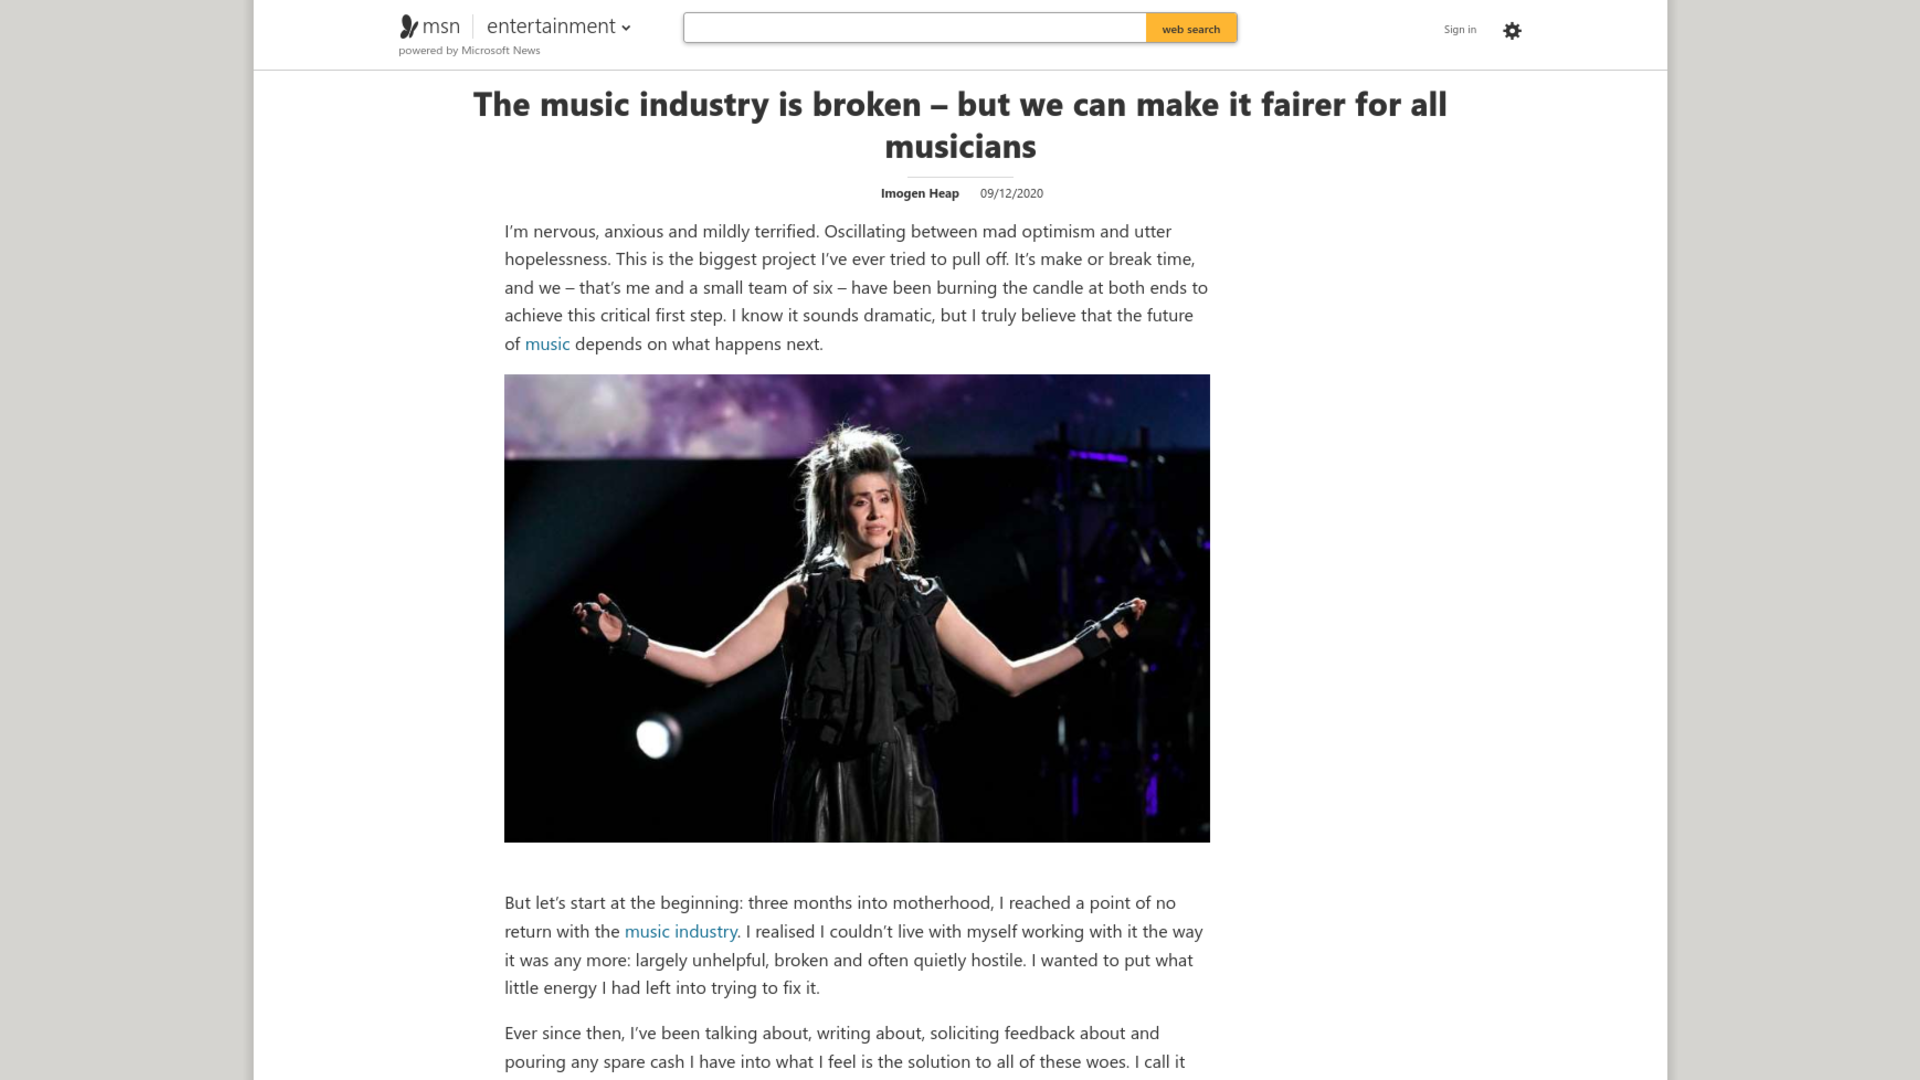 Fairness Rocks News The music industry is broken – but we can make it fairer for all musicians